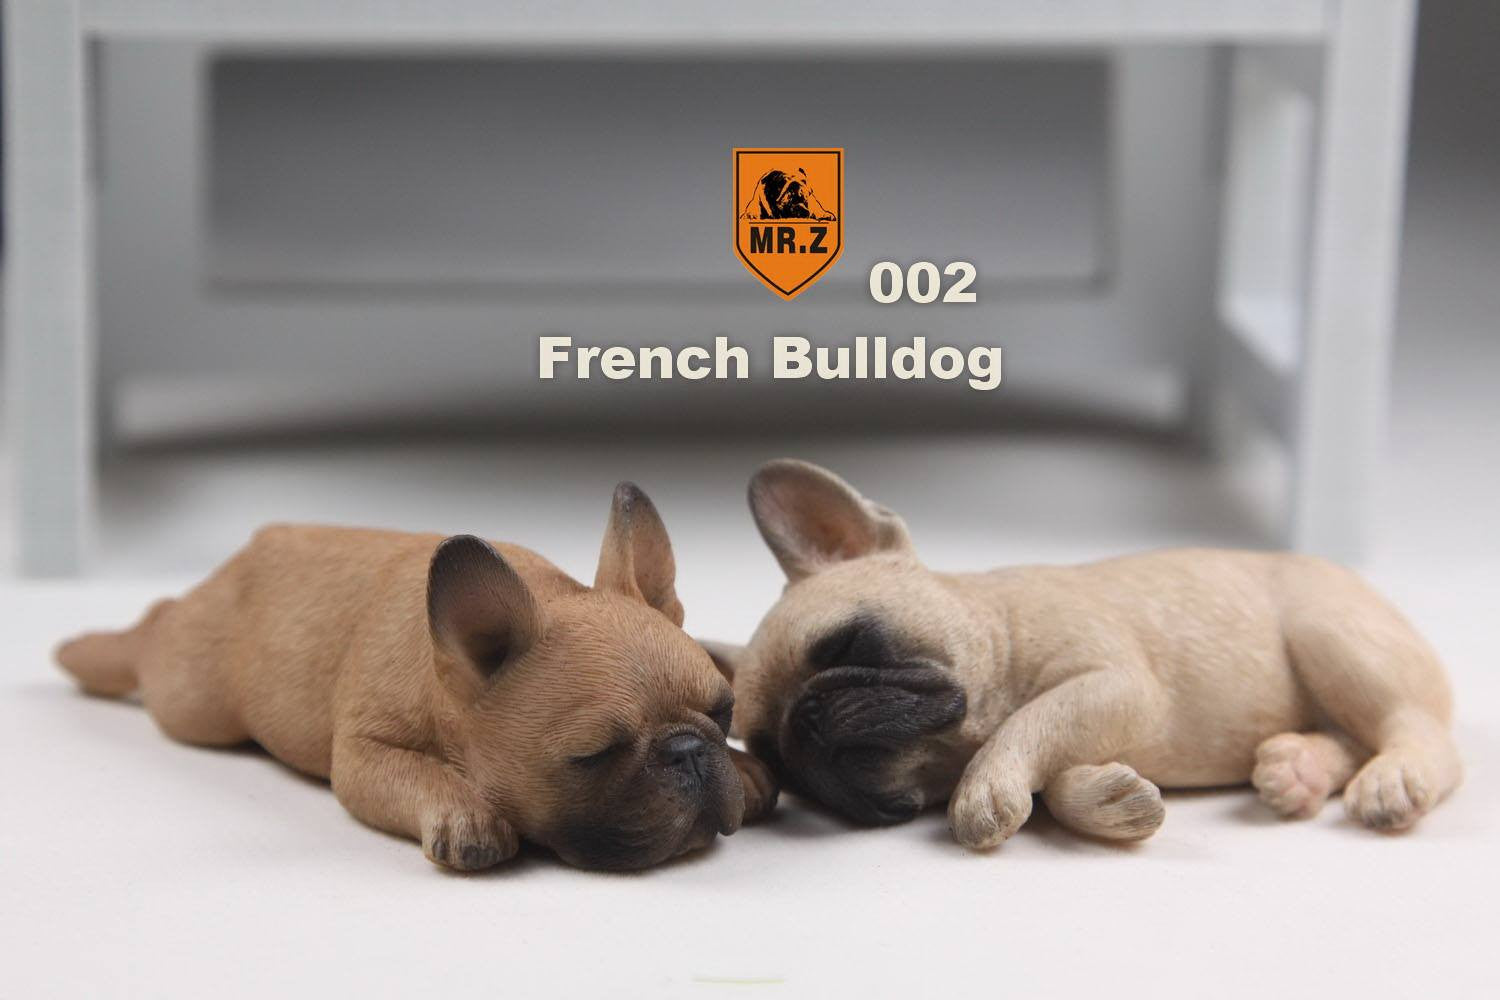 MR.Z - Real Animal Series No.9 - 1/6th Scale French Bulldog (Sleep Mode) 001-005 - Marvelous Toys - 10